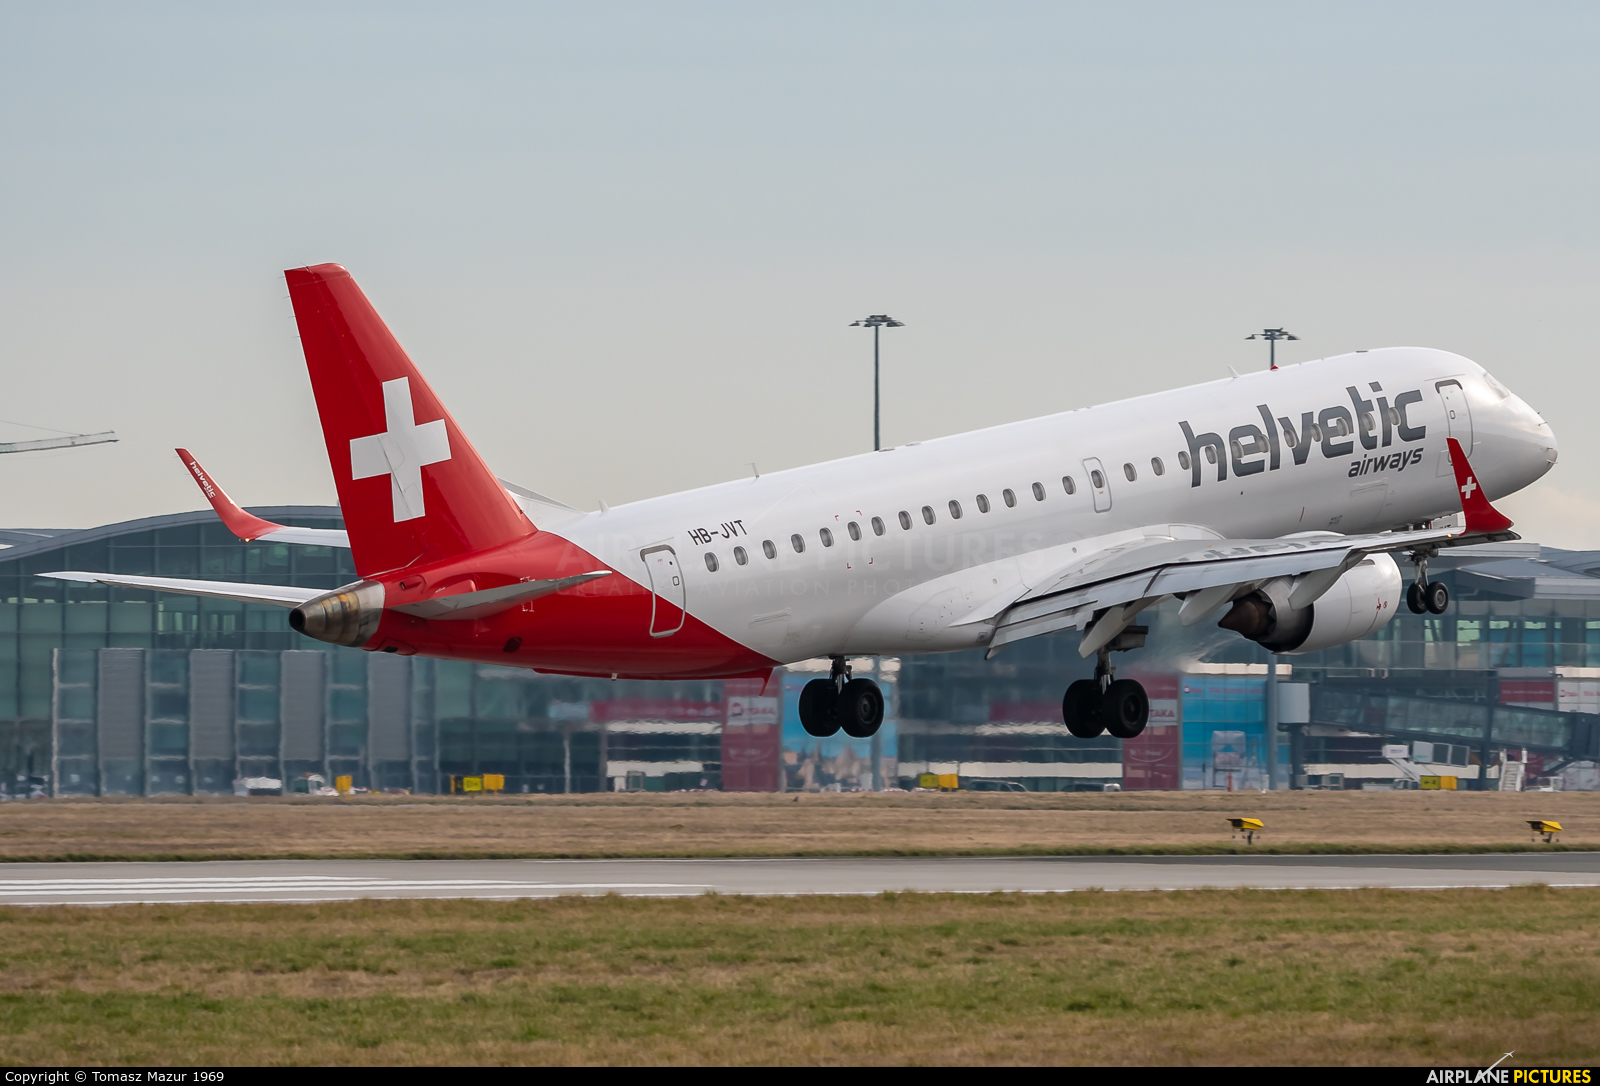 Helvetic Airways HB-JVT aircraft at Wrocław - Copernicus